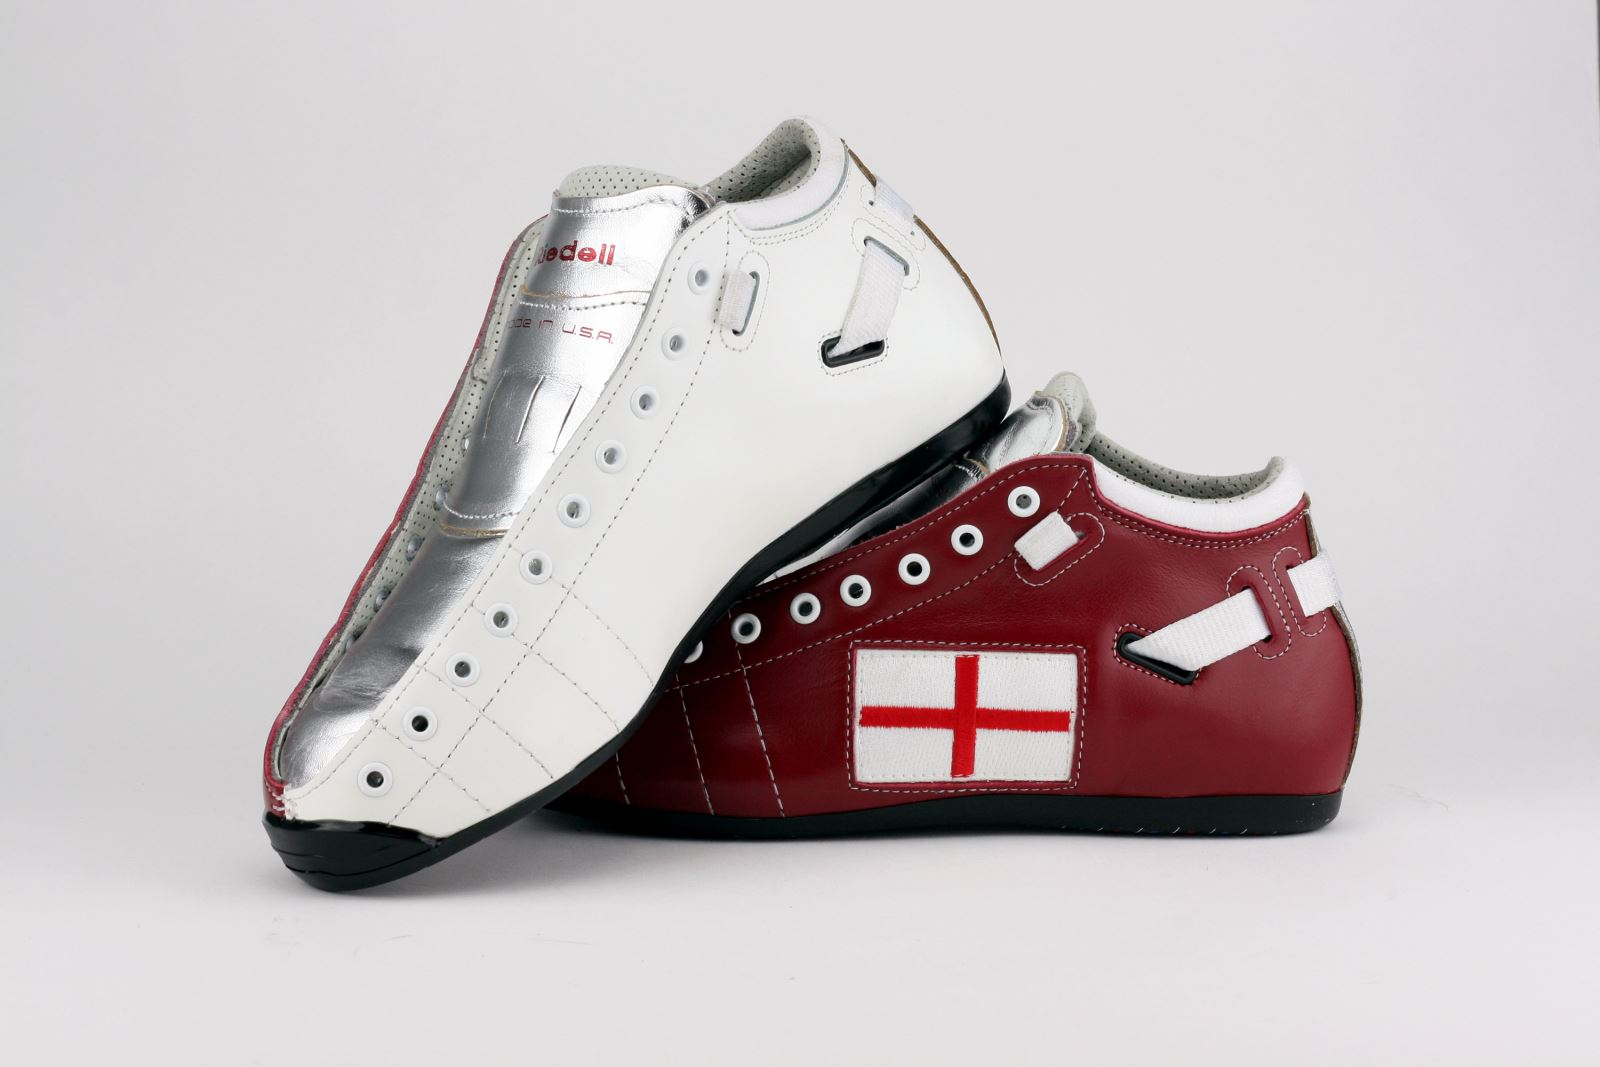 Riedell Superstar Shaolynn Scarlett's Custom Solaris Boots - Red and White Leather with England Flag Patch